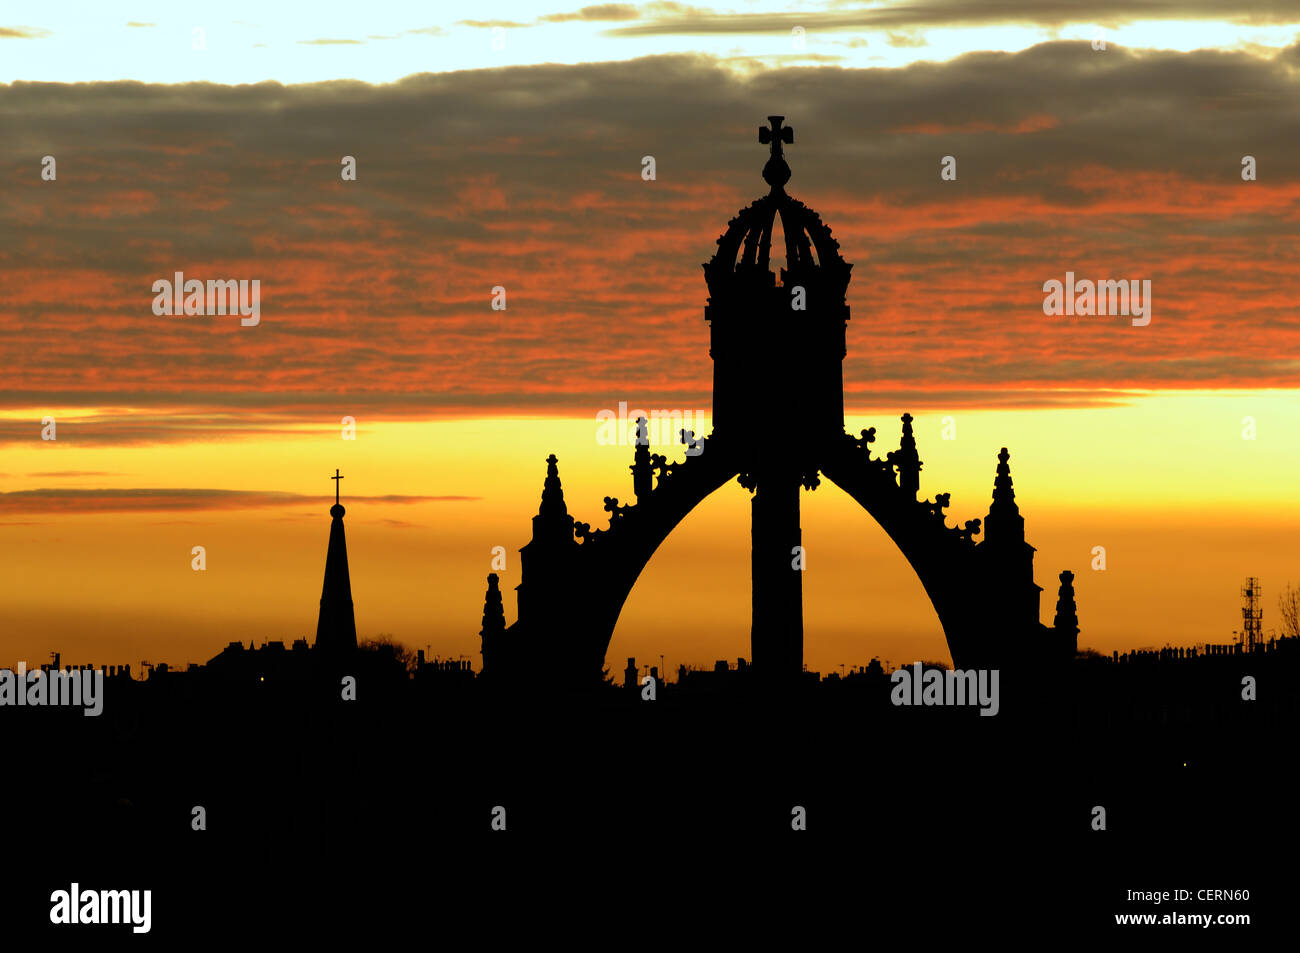 Silhouette of the Crown Tower, King's College, Aberdeen - Stock Image